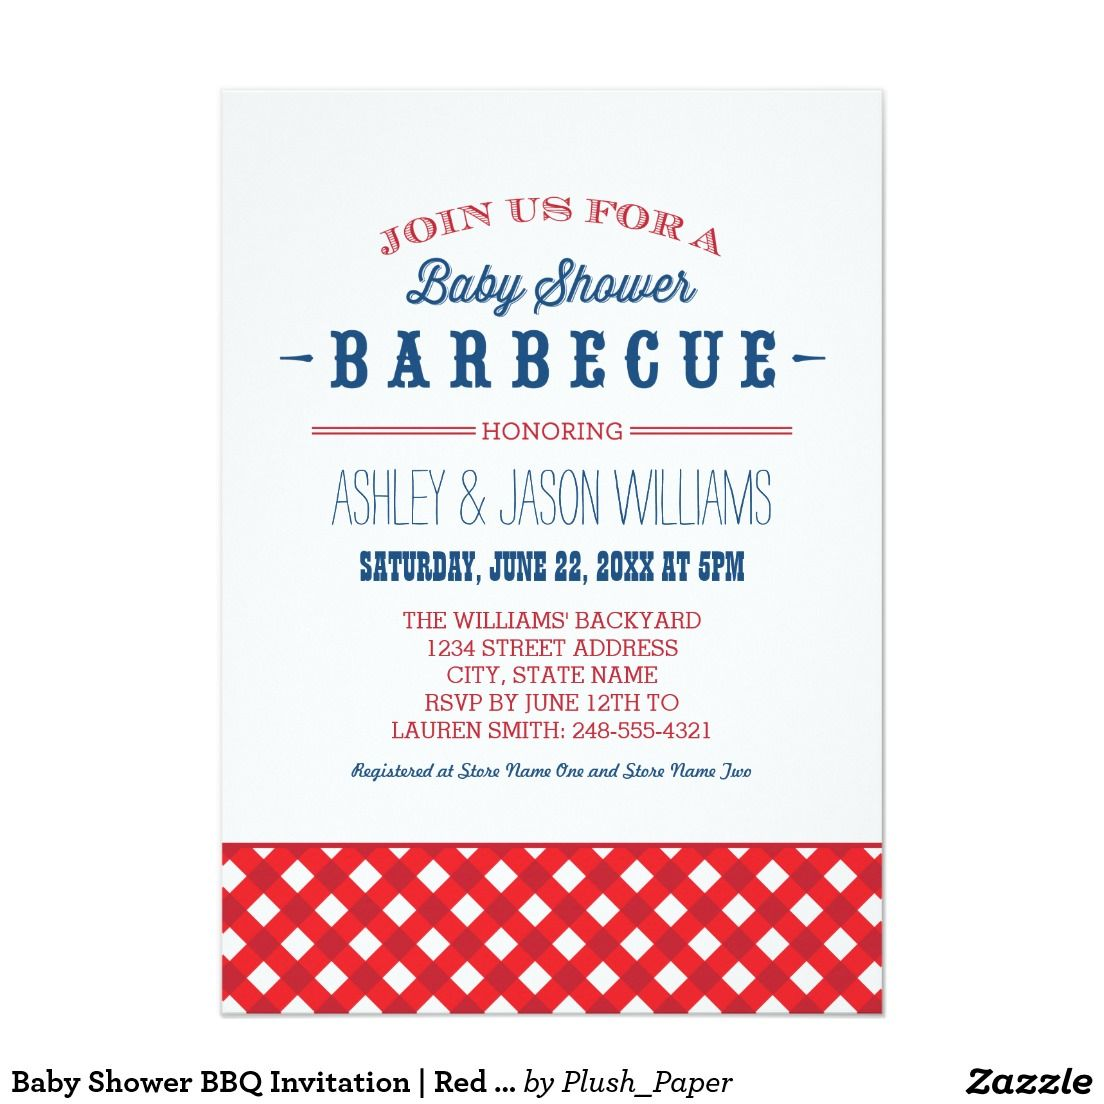 Baby Shower BBQ Invitation | Red White + Blue\'.Festive and stylish ...